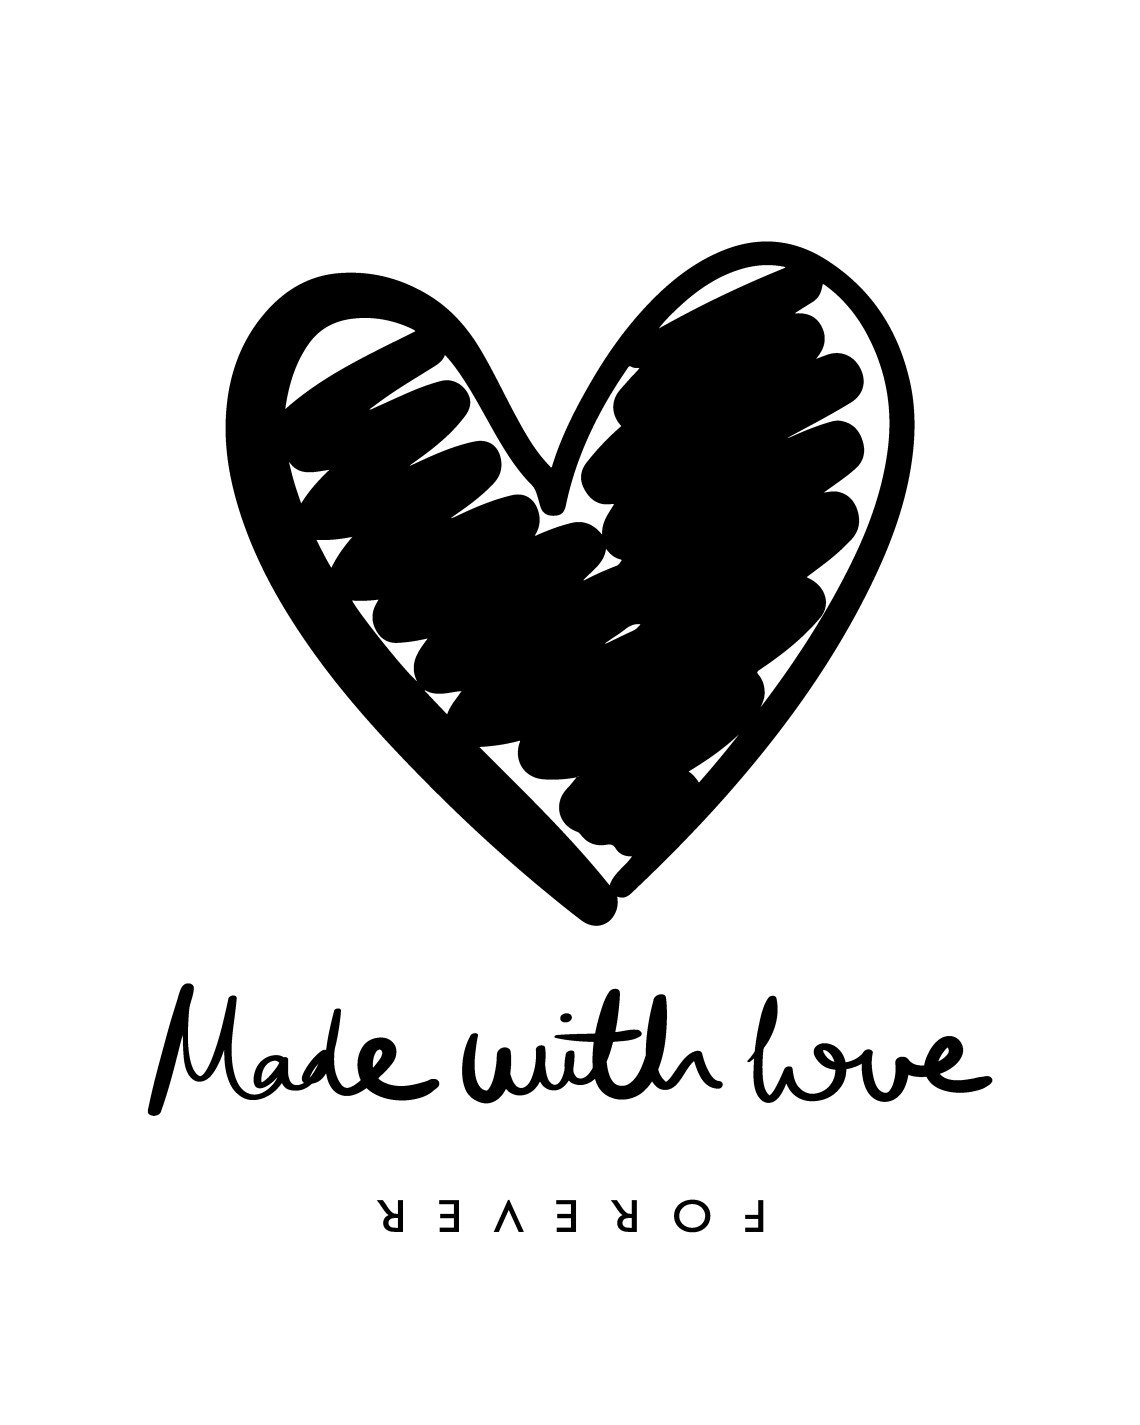 Download Heart shape and made with love text design - Download Free ...